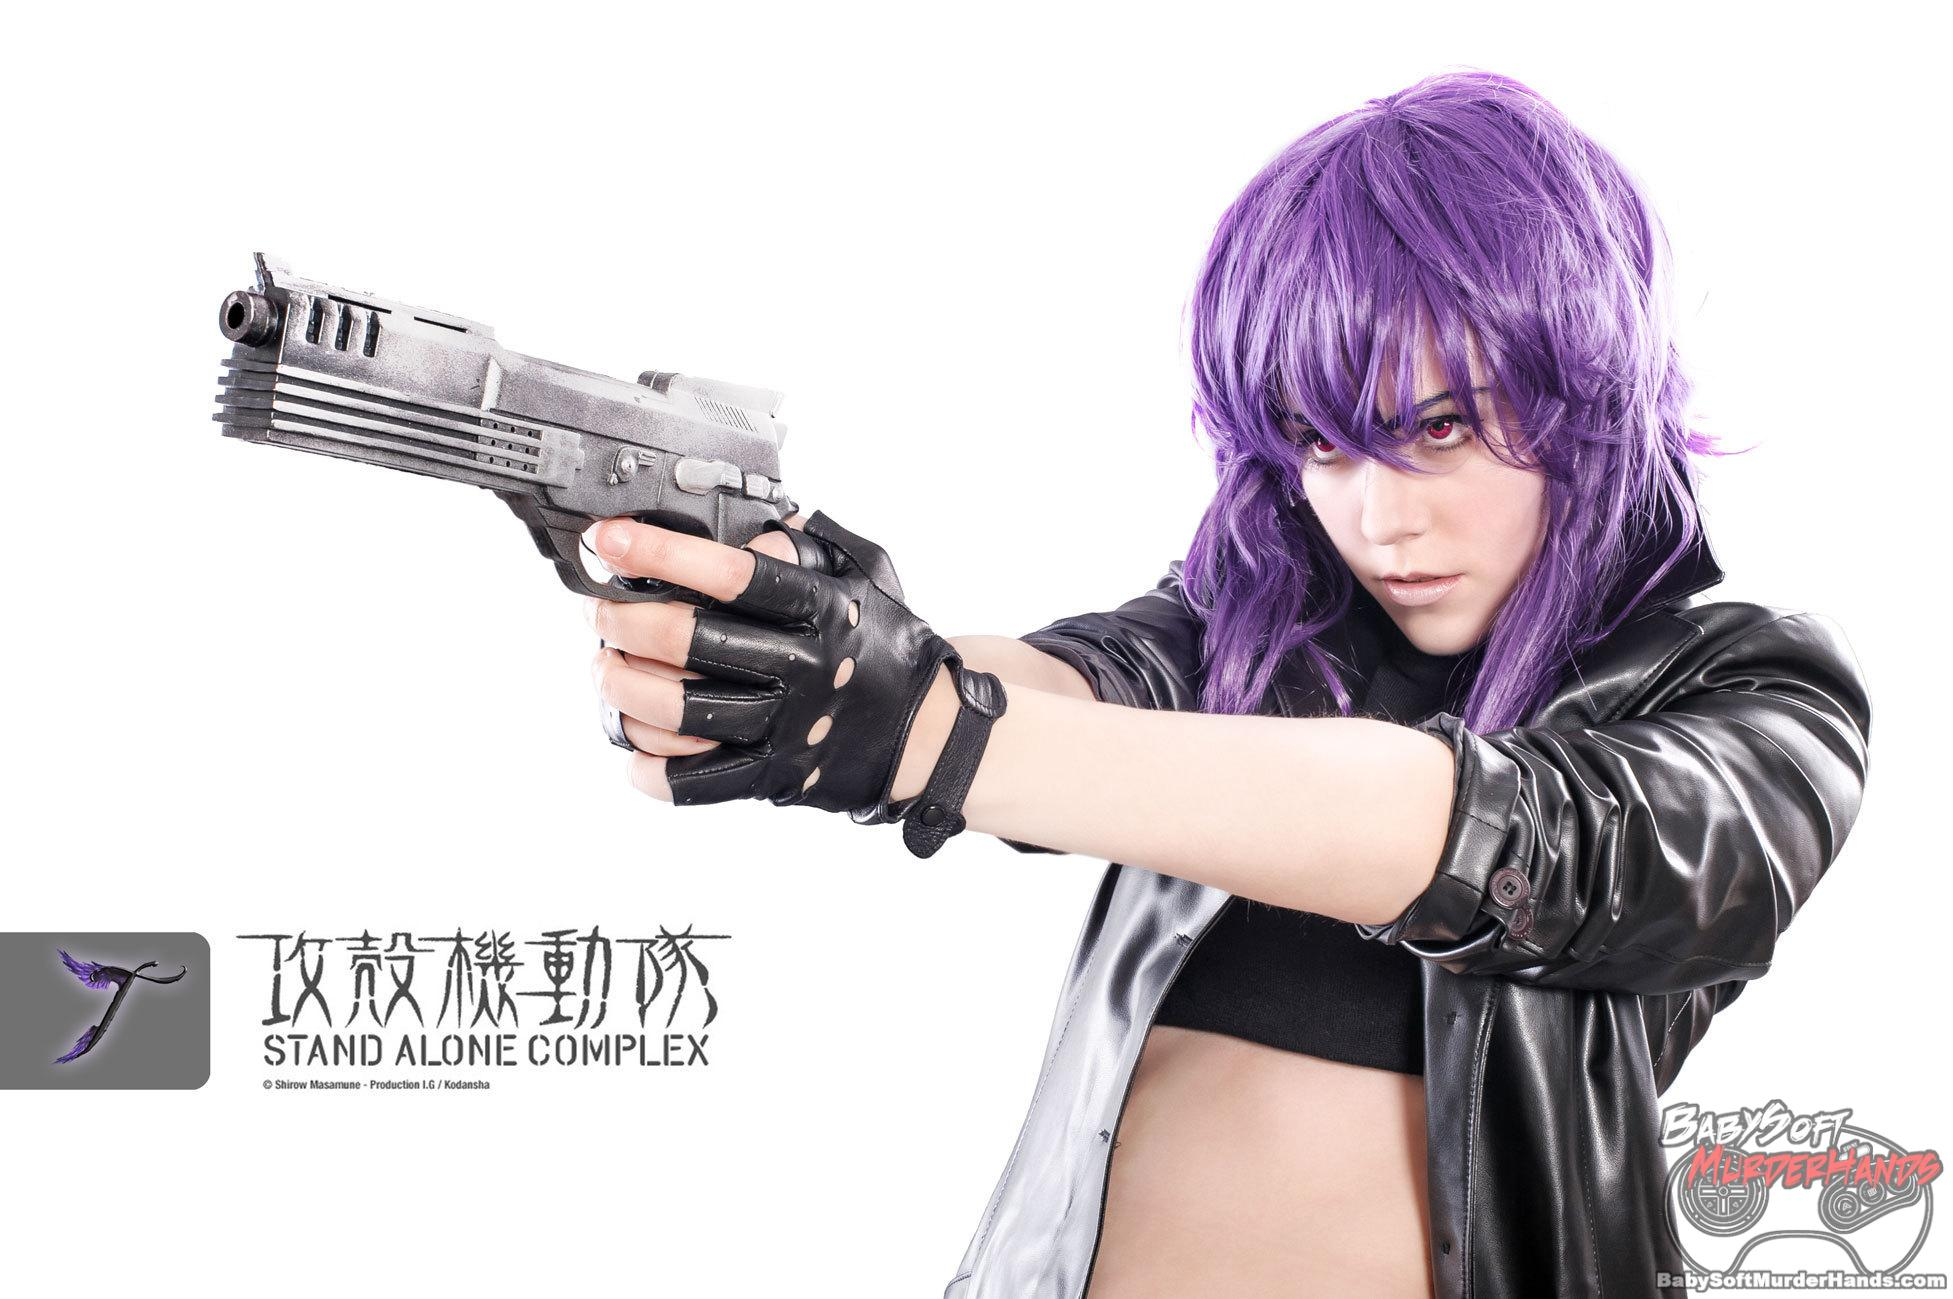 Tenshi Motoko Kusanagi of Ghost in the Shell: Stand Alone Complex Cosplay